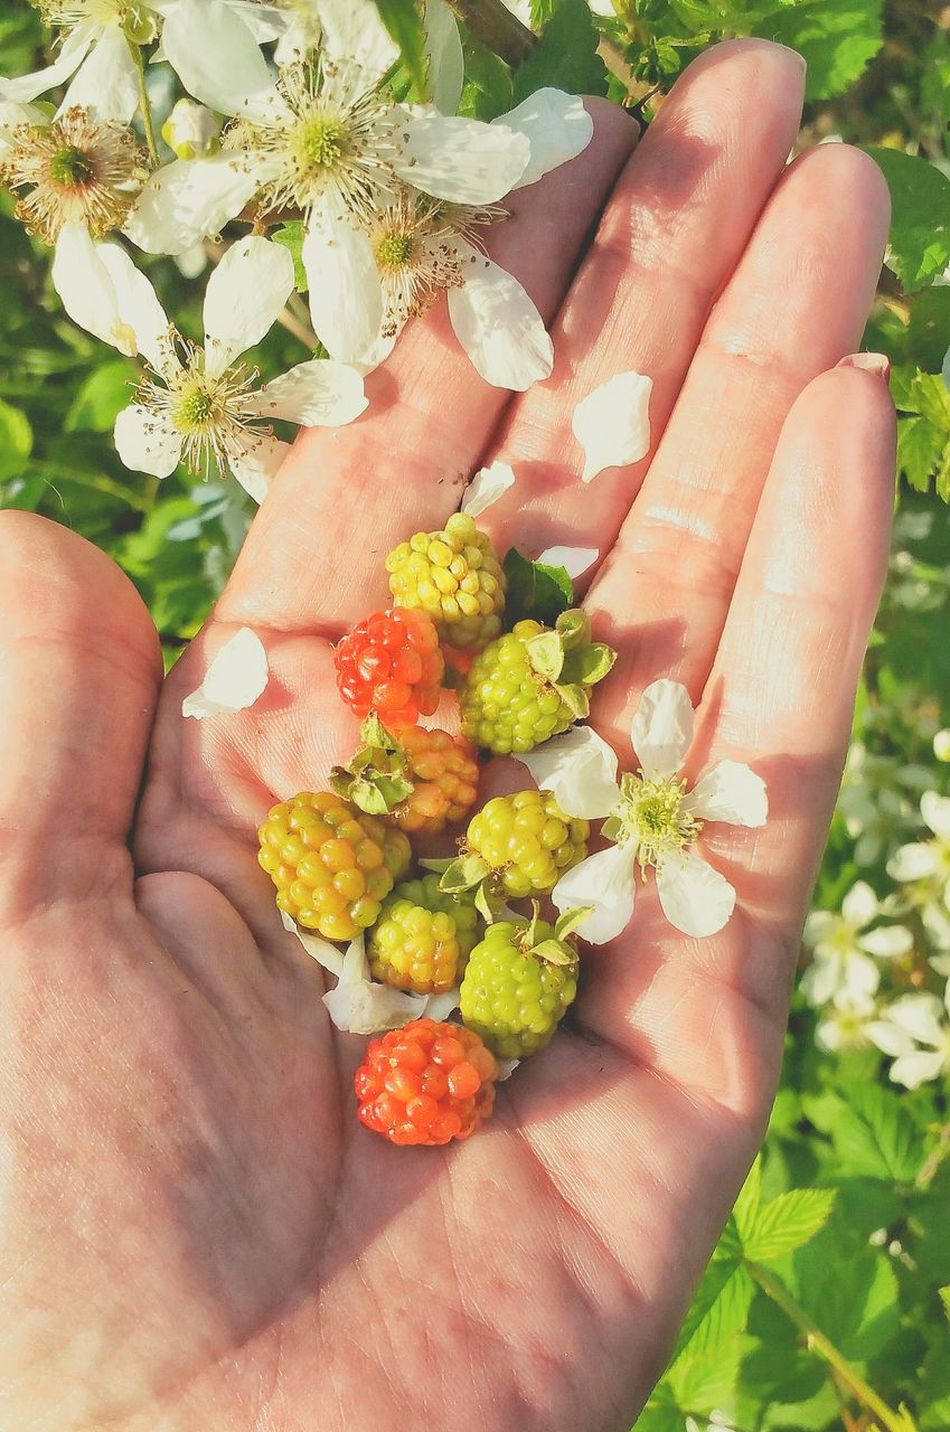 Human Hand Holding Food Freshness Healthy Eating People Palm Close-up Leisure Activity Nature Outdoors Beauty In Nature Wild Blackberries Dew Berries Blackberry Backgrounds High Angle View Room For Text Room For Copy Unripe Fruit Freshness Multi Colored Variation Berry Fruit